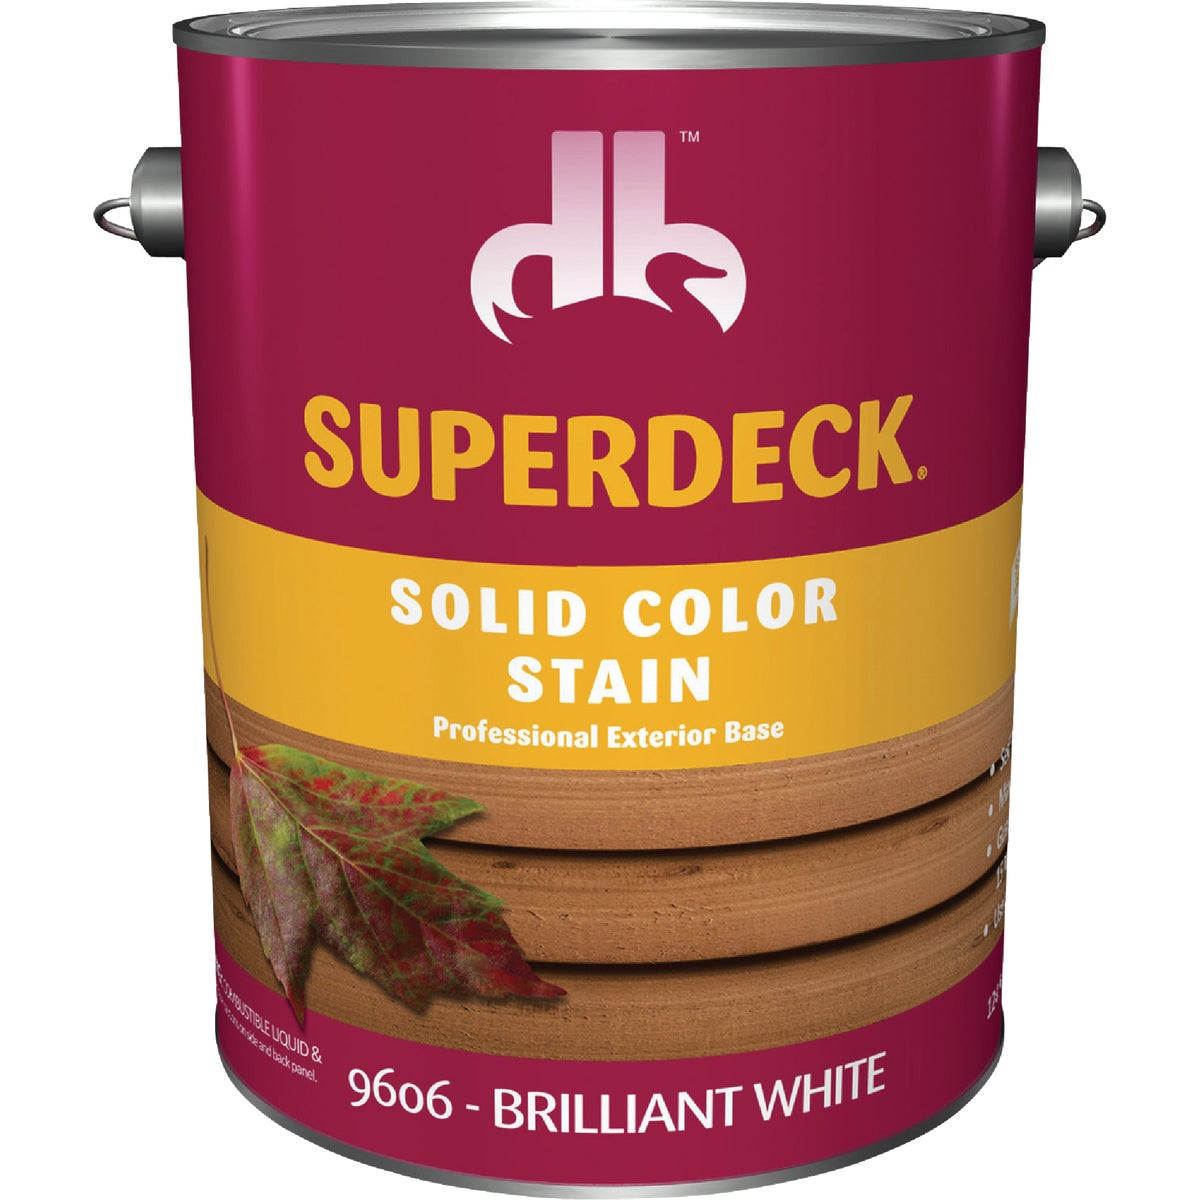 WHITE SOLID DECK STAIN